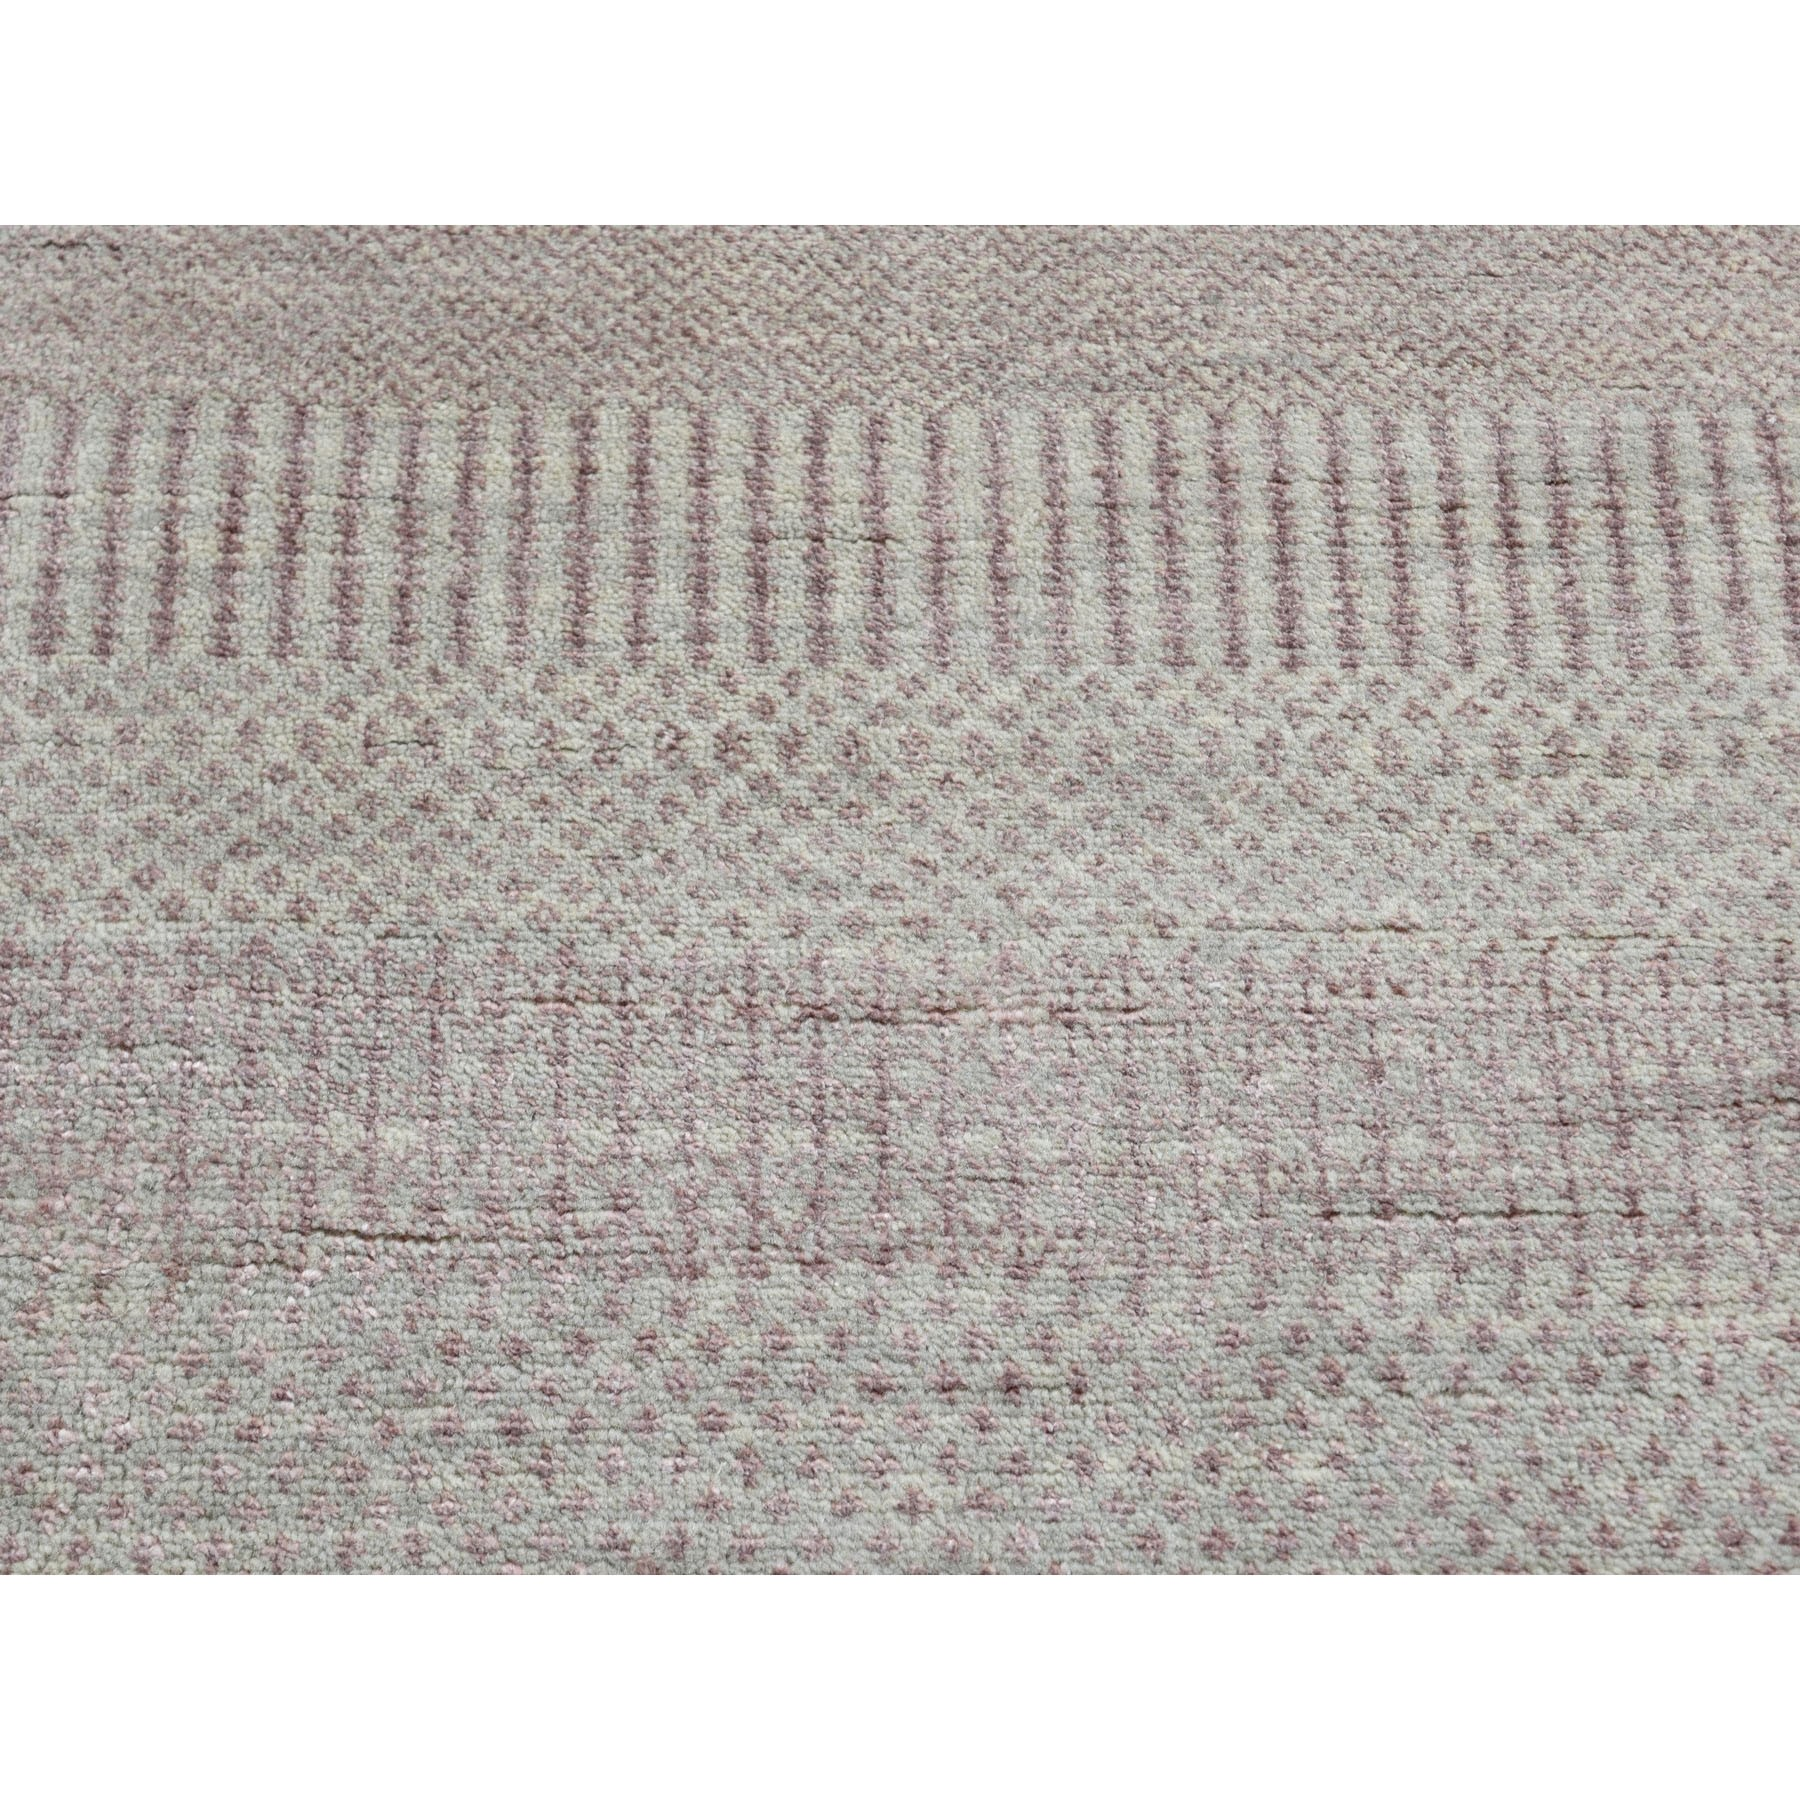 5'x7' Hand Knotted Wool and Silk Grass Design Oriental Rug